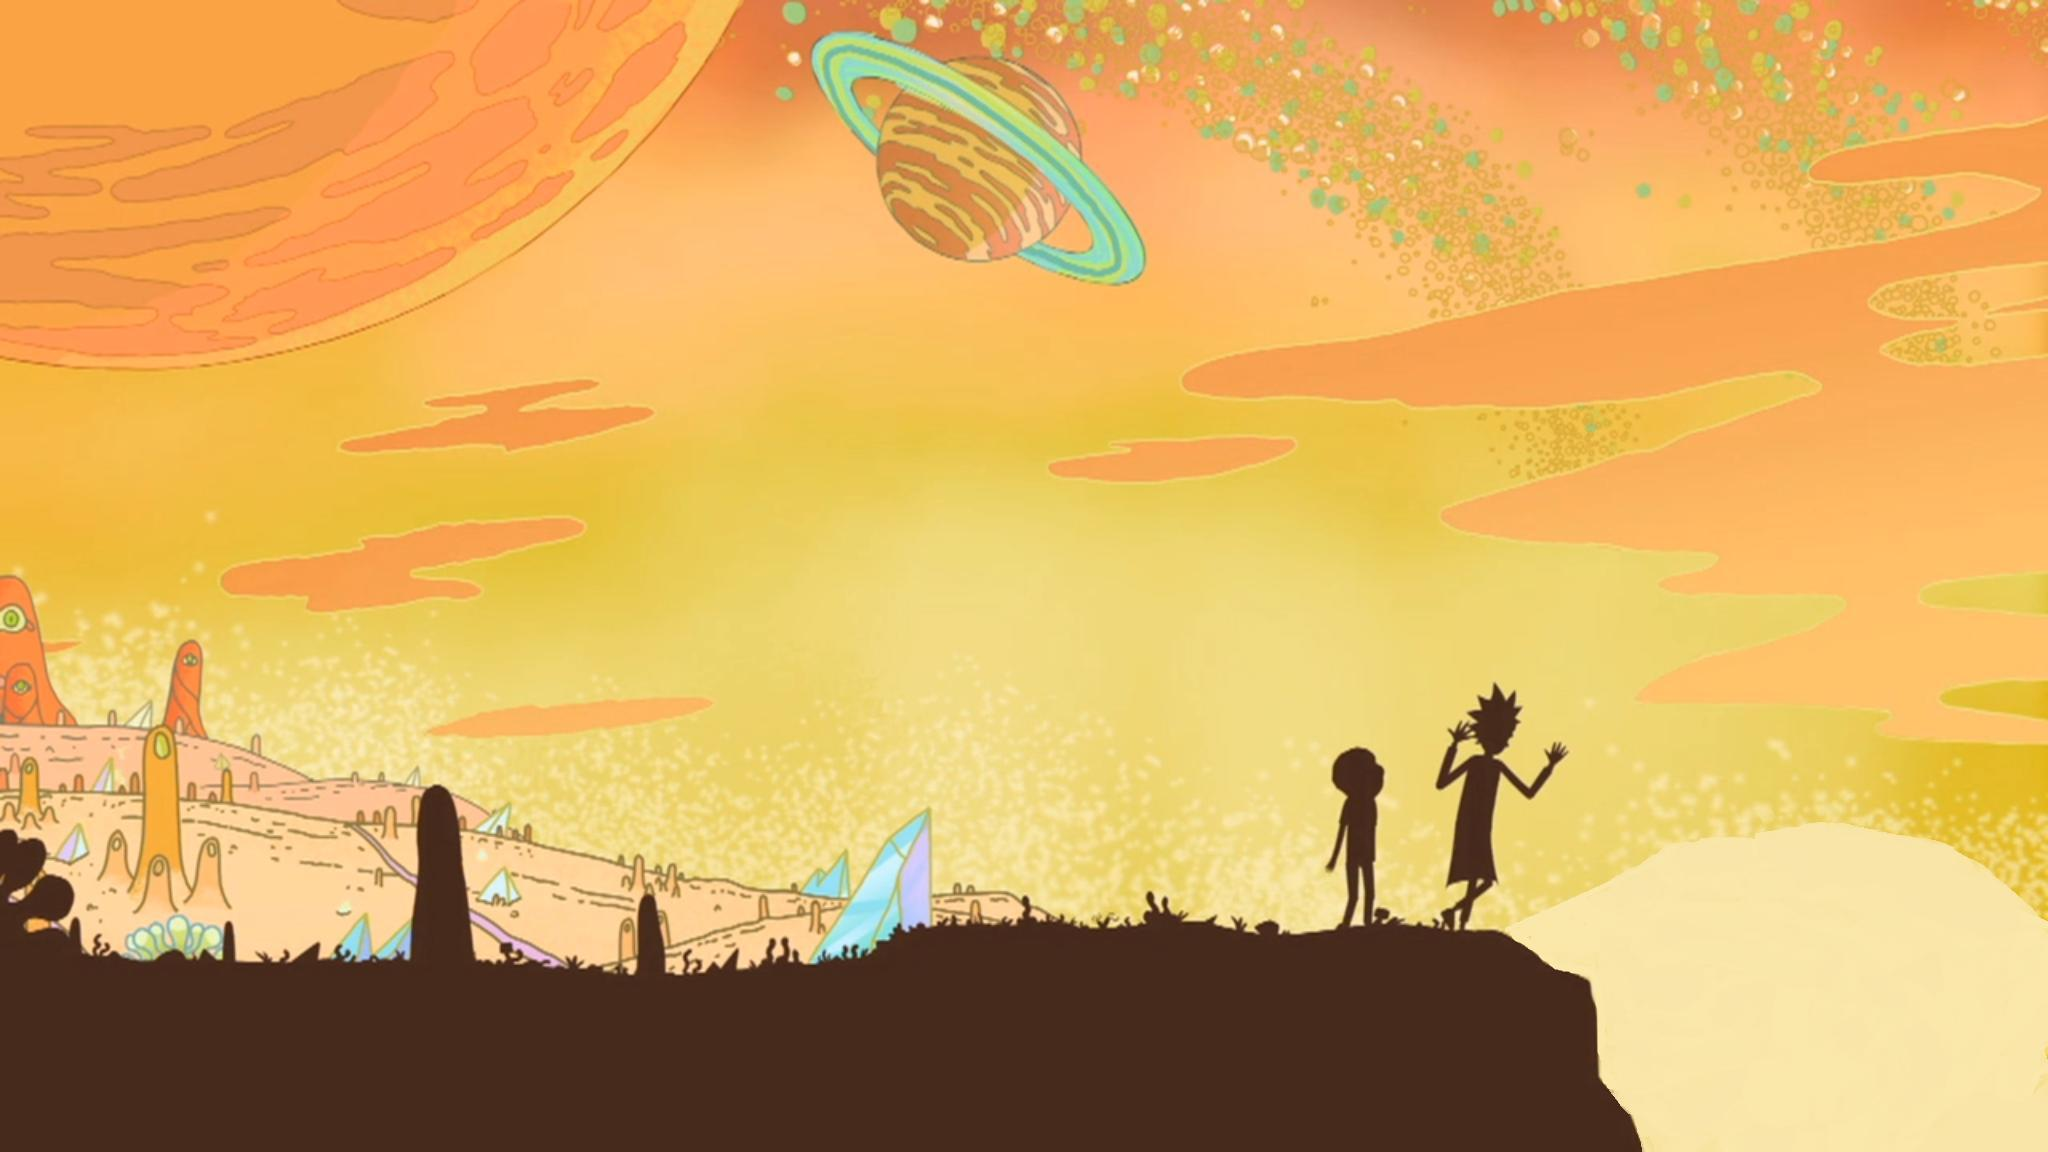 rick and morty wallpaper hd